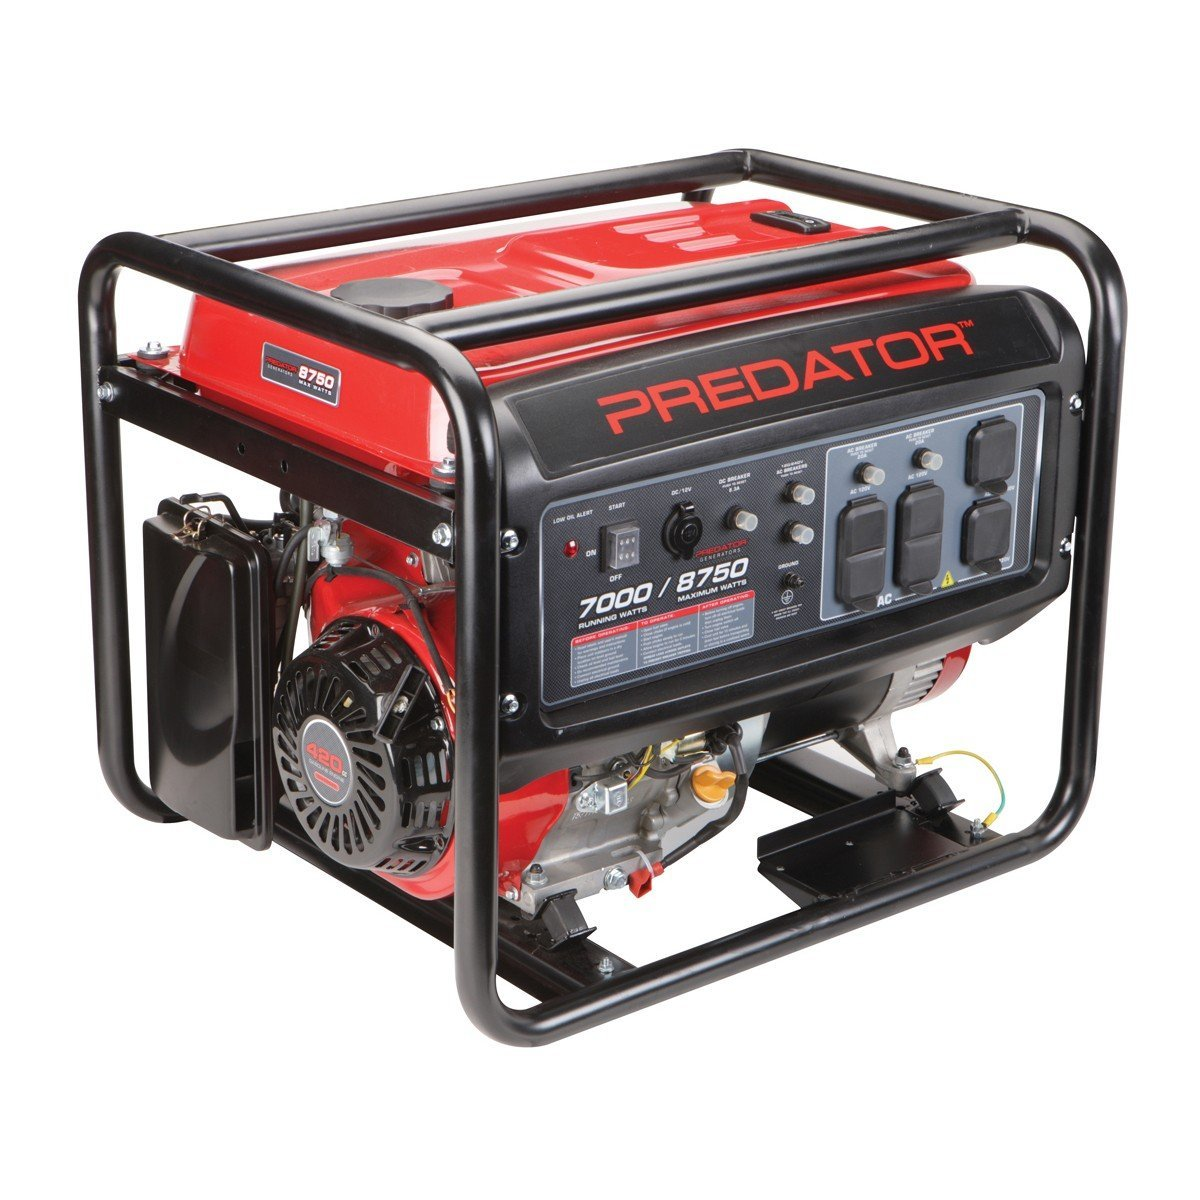 Predator Generator Reviews What You Need To Know Before Buying Wiring Well Pump 7000 Watt Model